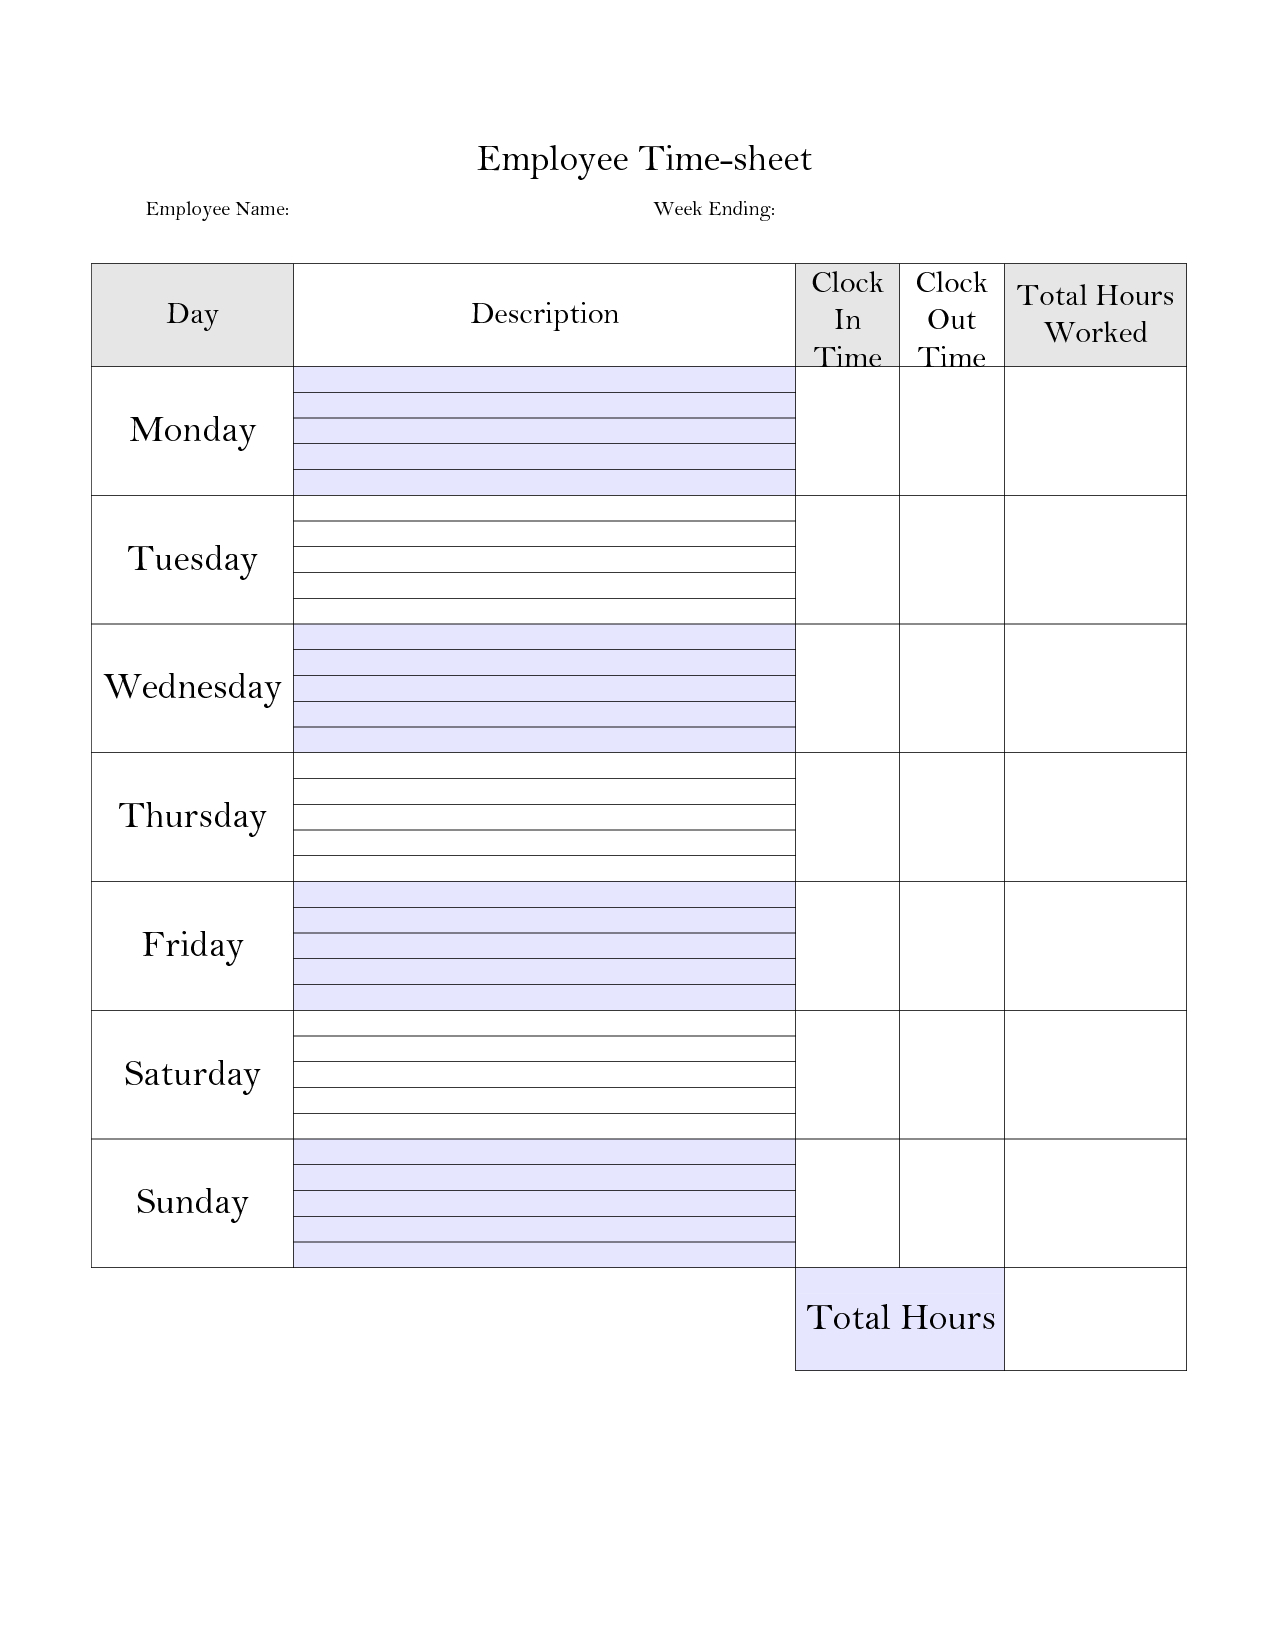 Printable Weekly Employee Time Card - Google Search | Construction intended for Printable Blank Weekly Employee Schedule